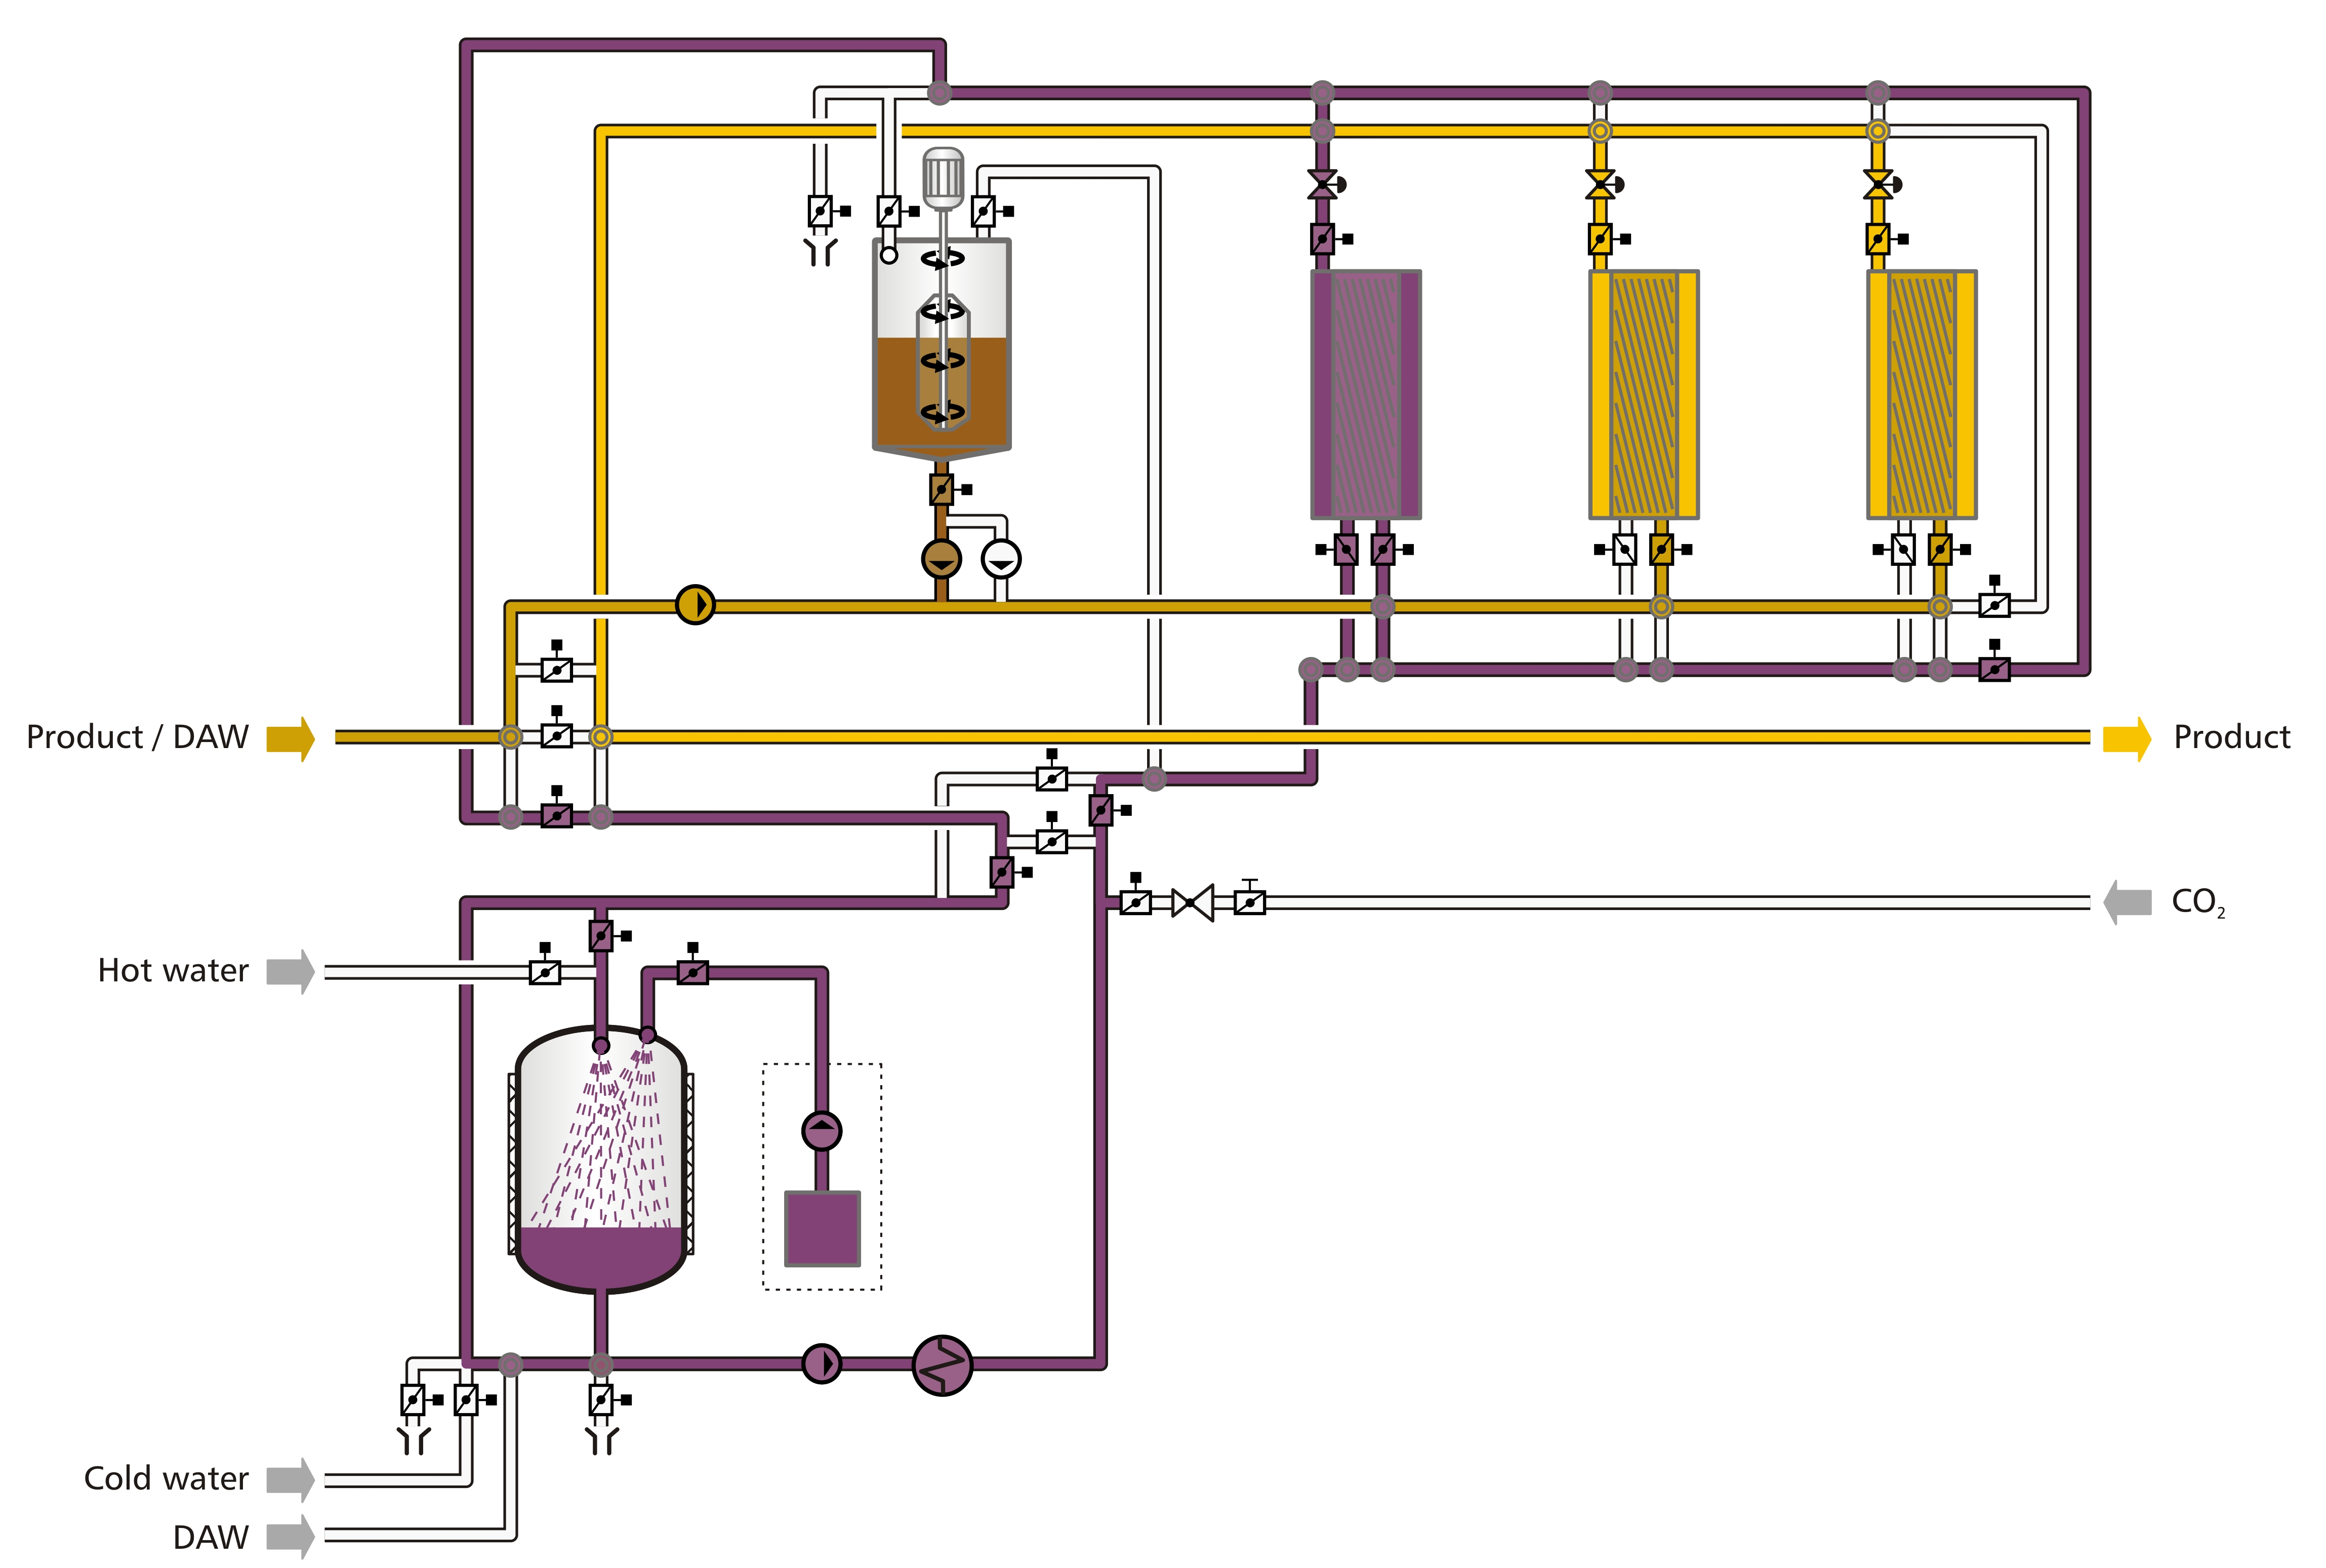 New standards in beer stabilization khs gmbh download image jpg 1 mb ccuart Gallery